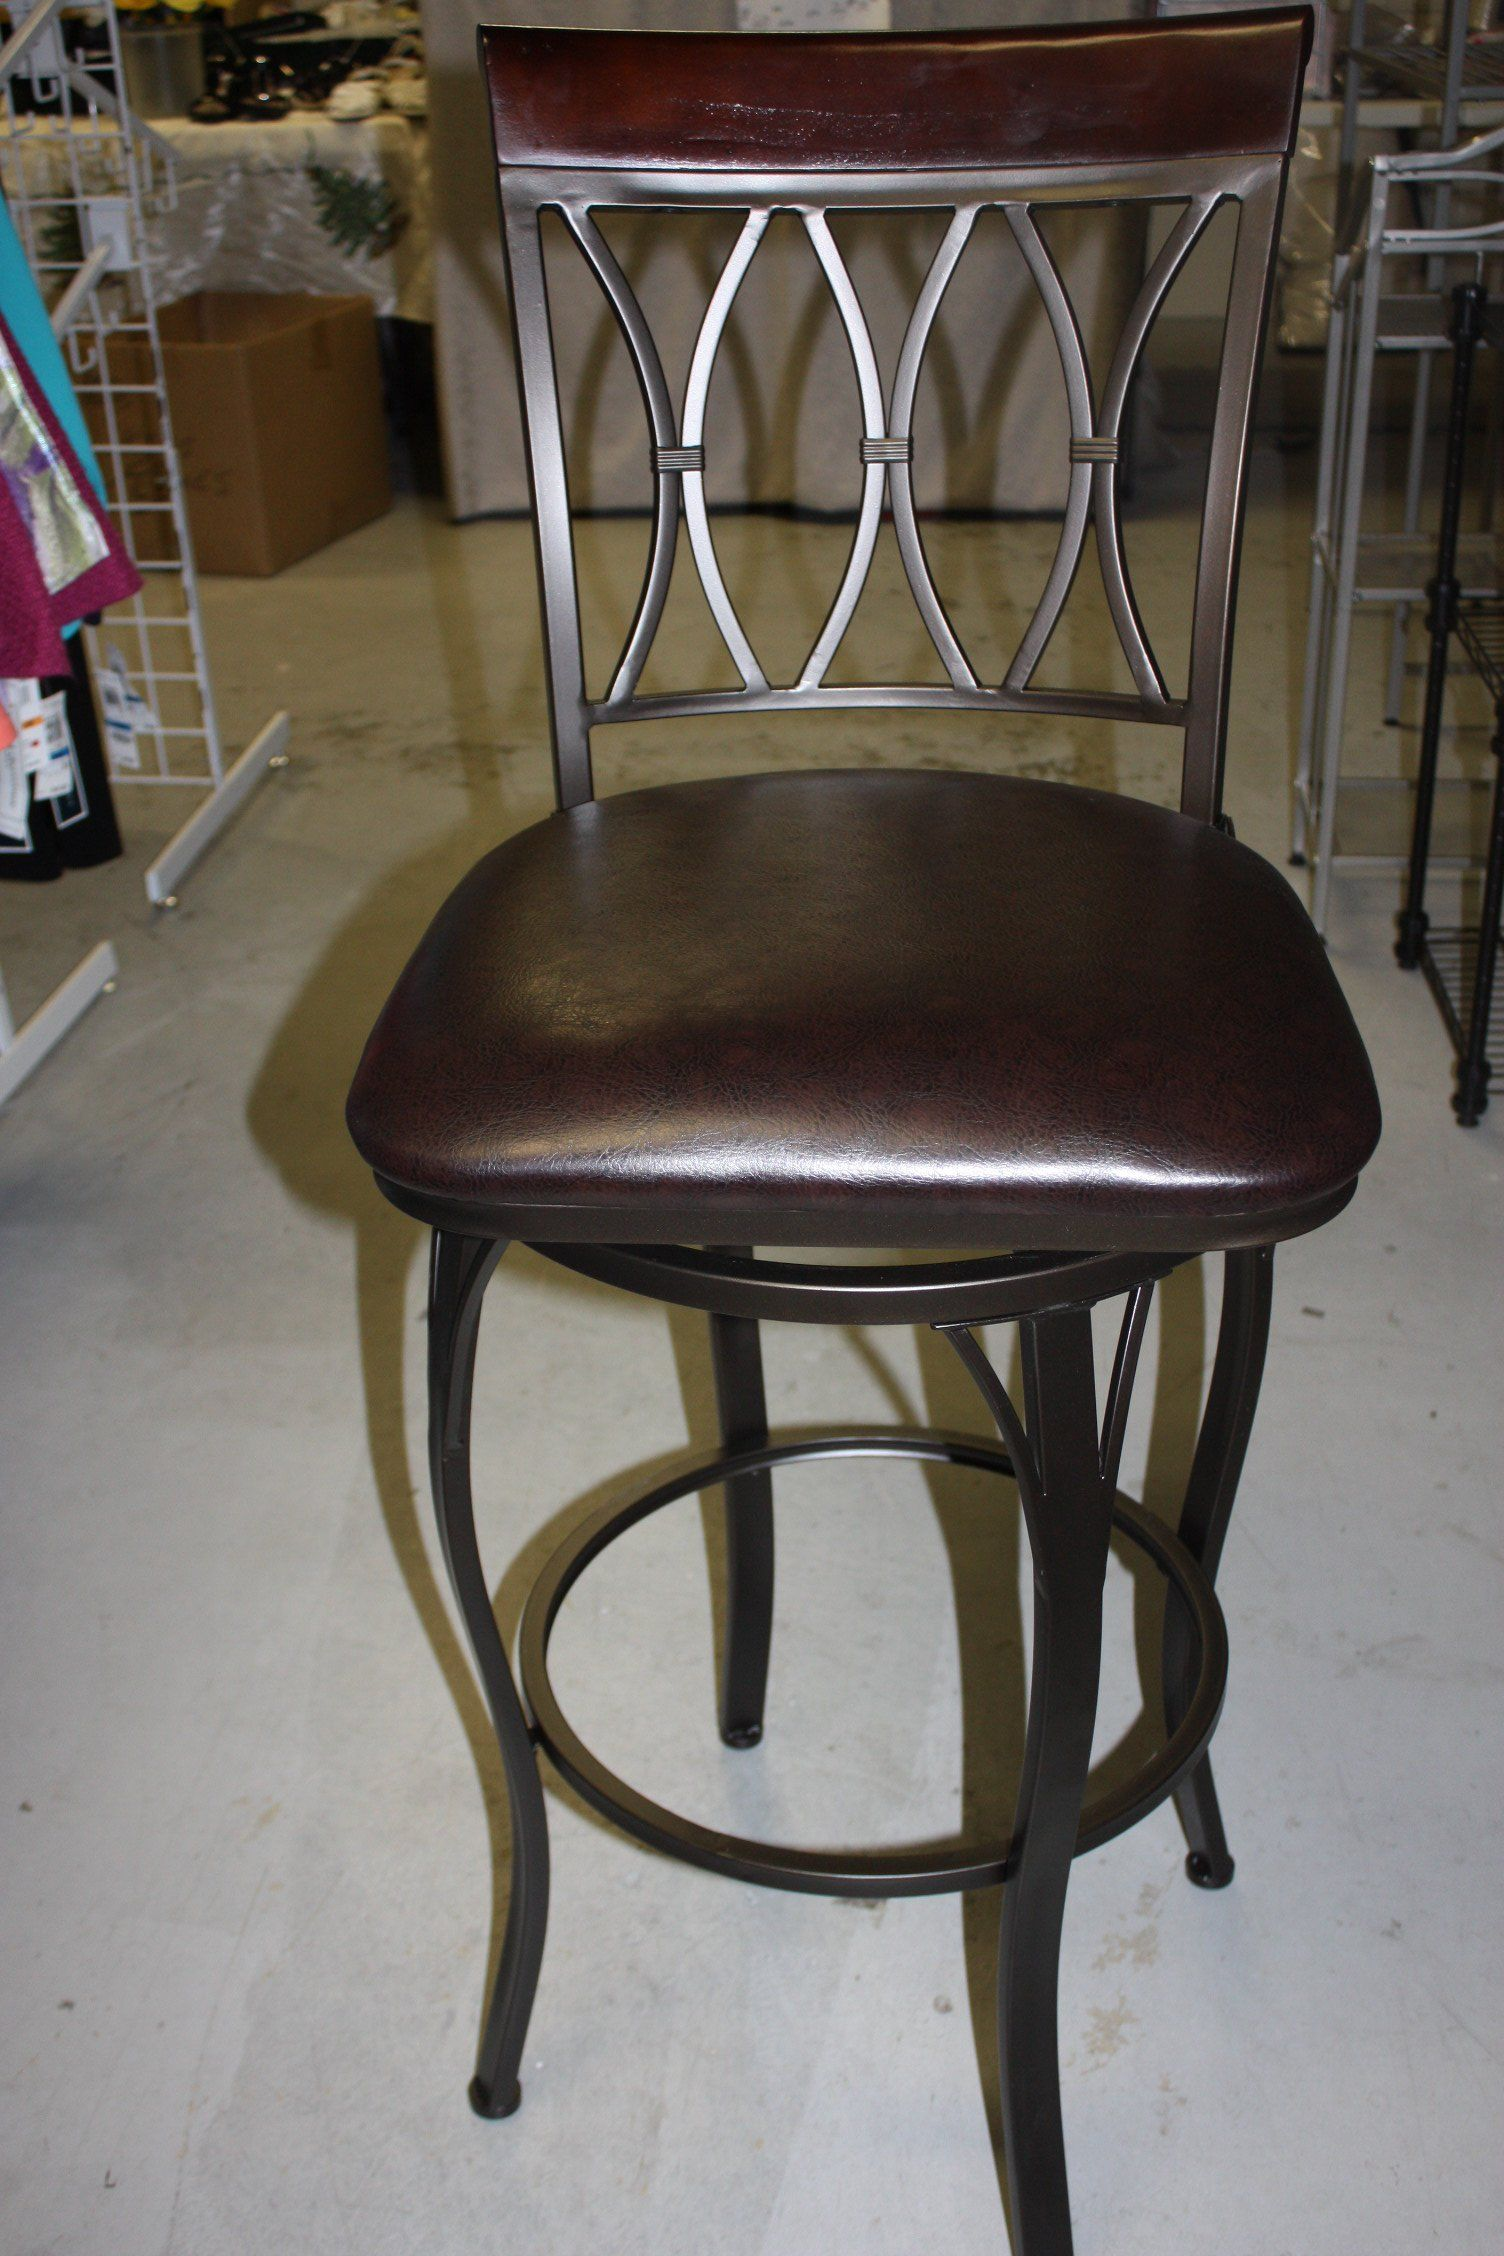 Teak Swivel Barstool With Curved Seat 30 Inch Bar Stools Swivel Bar Stools Wine Barrel Bar Stools